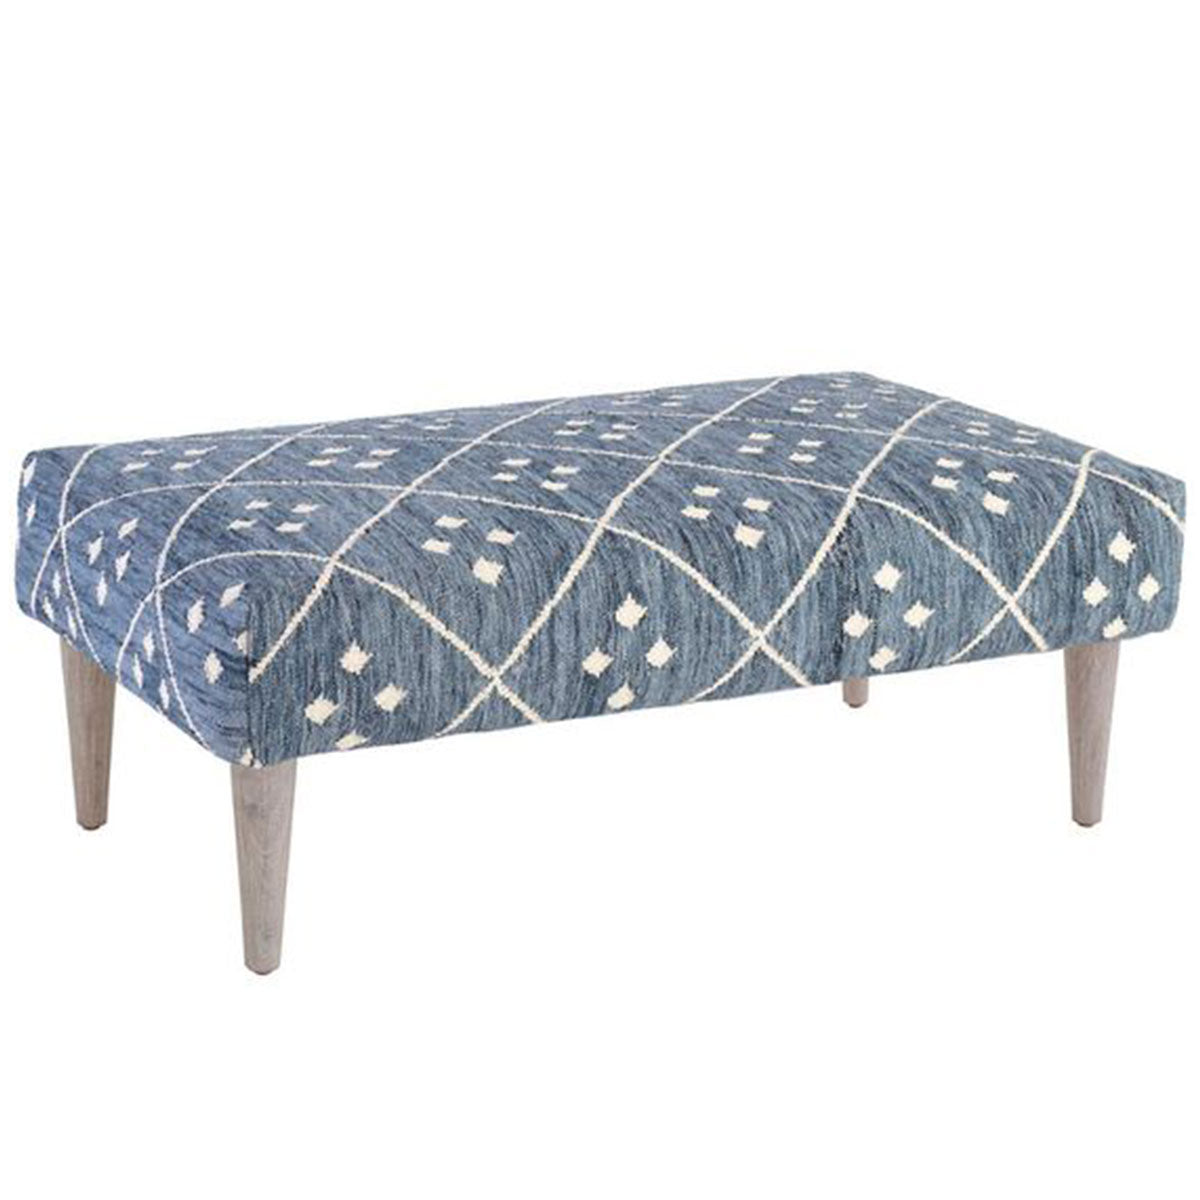 Furbish Studio - Malibu Farm Rug Square or Rectangular Ottoman with Cerused Leg in Indigo